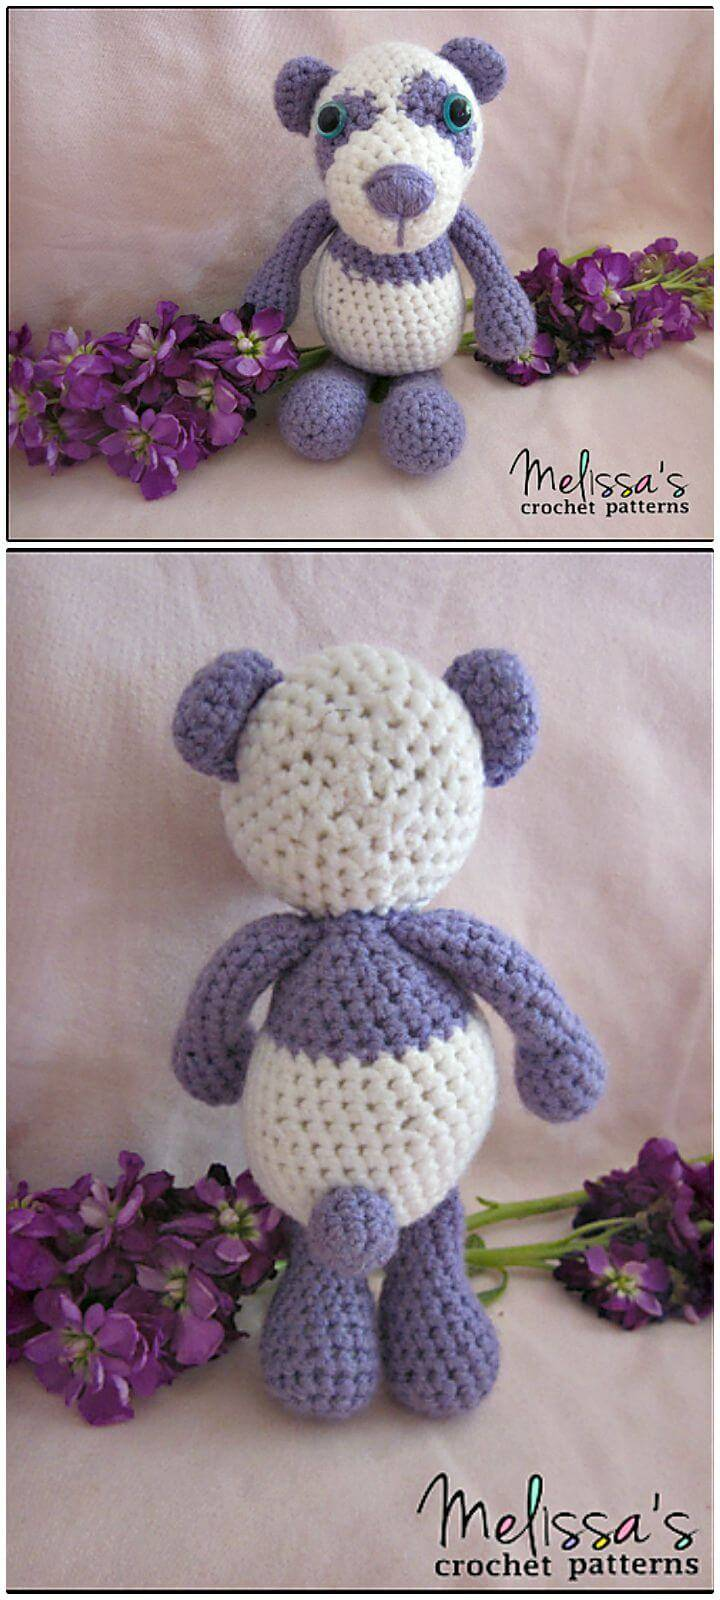 How To Crochet Precious The Purple Teddy Bear - Free Pattern